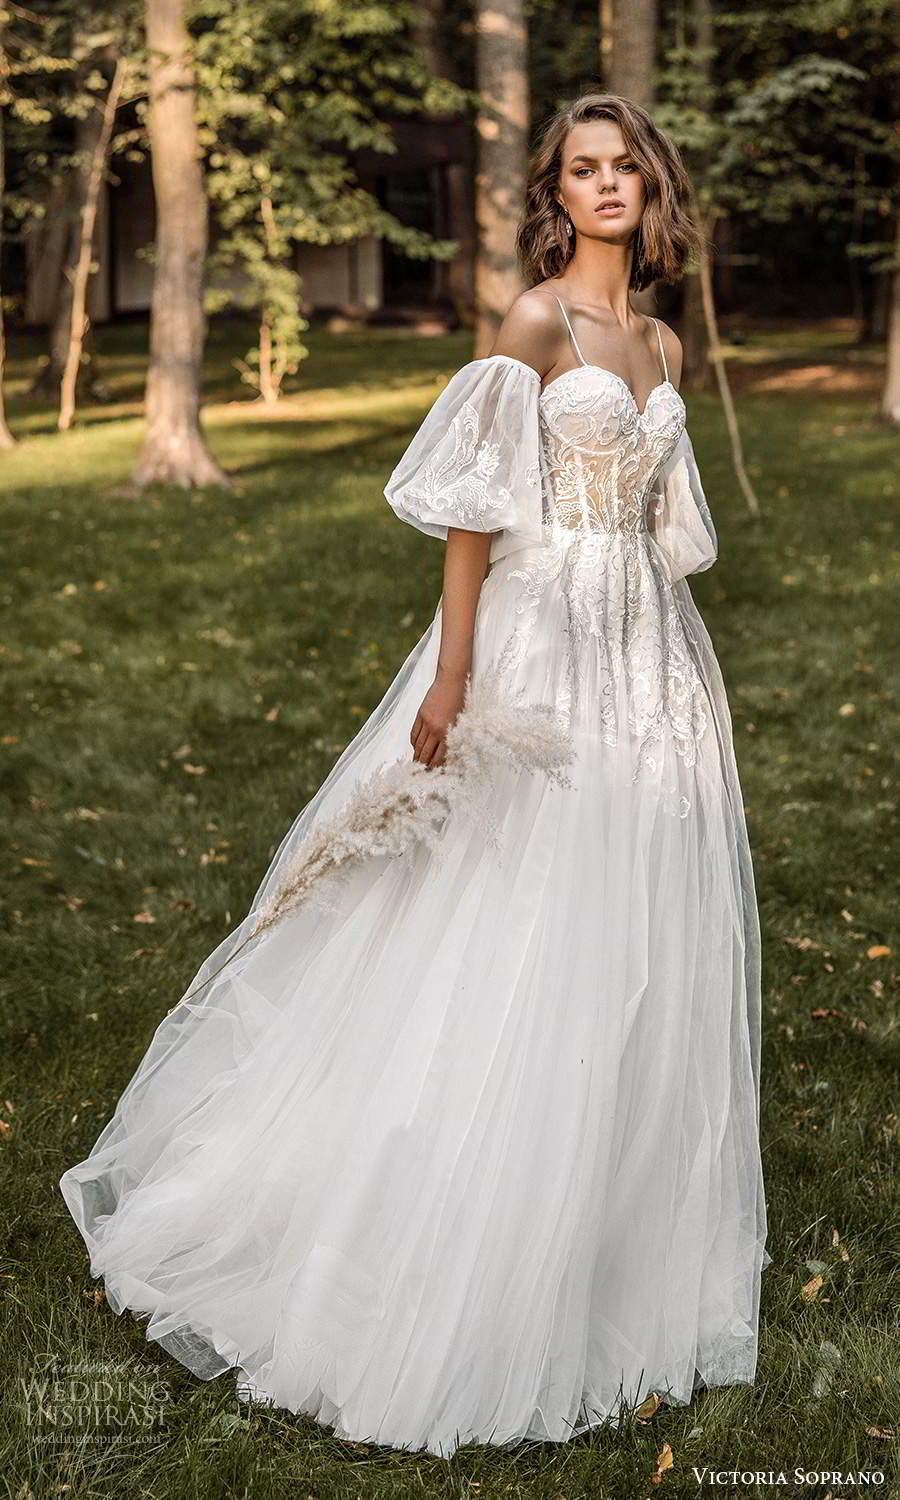 victoria soprano 2022 bridal detached puff sleeves sleeveless straps sweetheart neckline embellished bodice a line ball gown wedding dress chapel train (18) mv